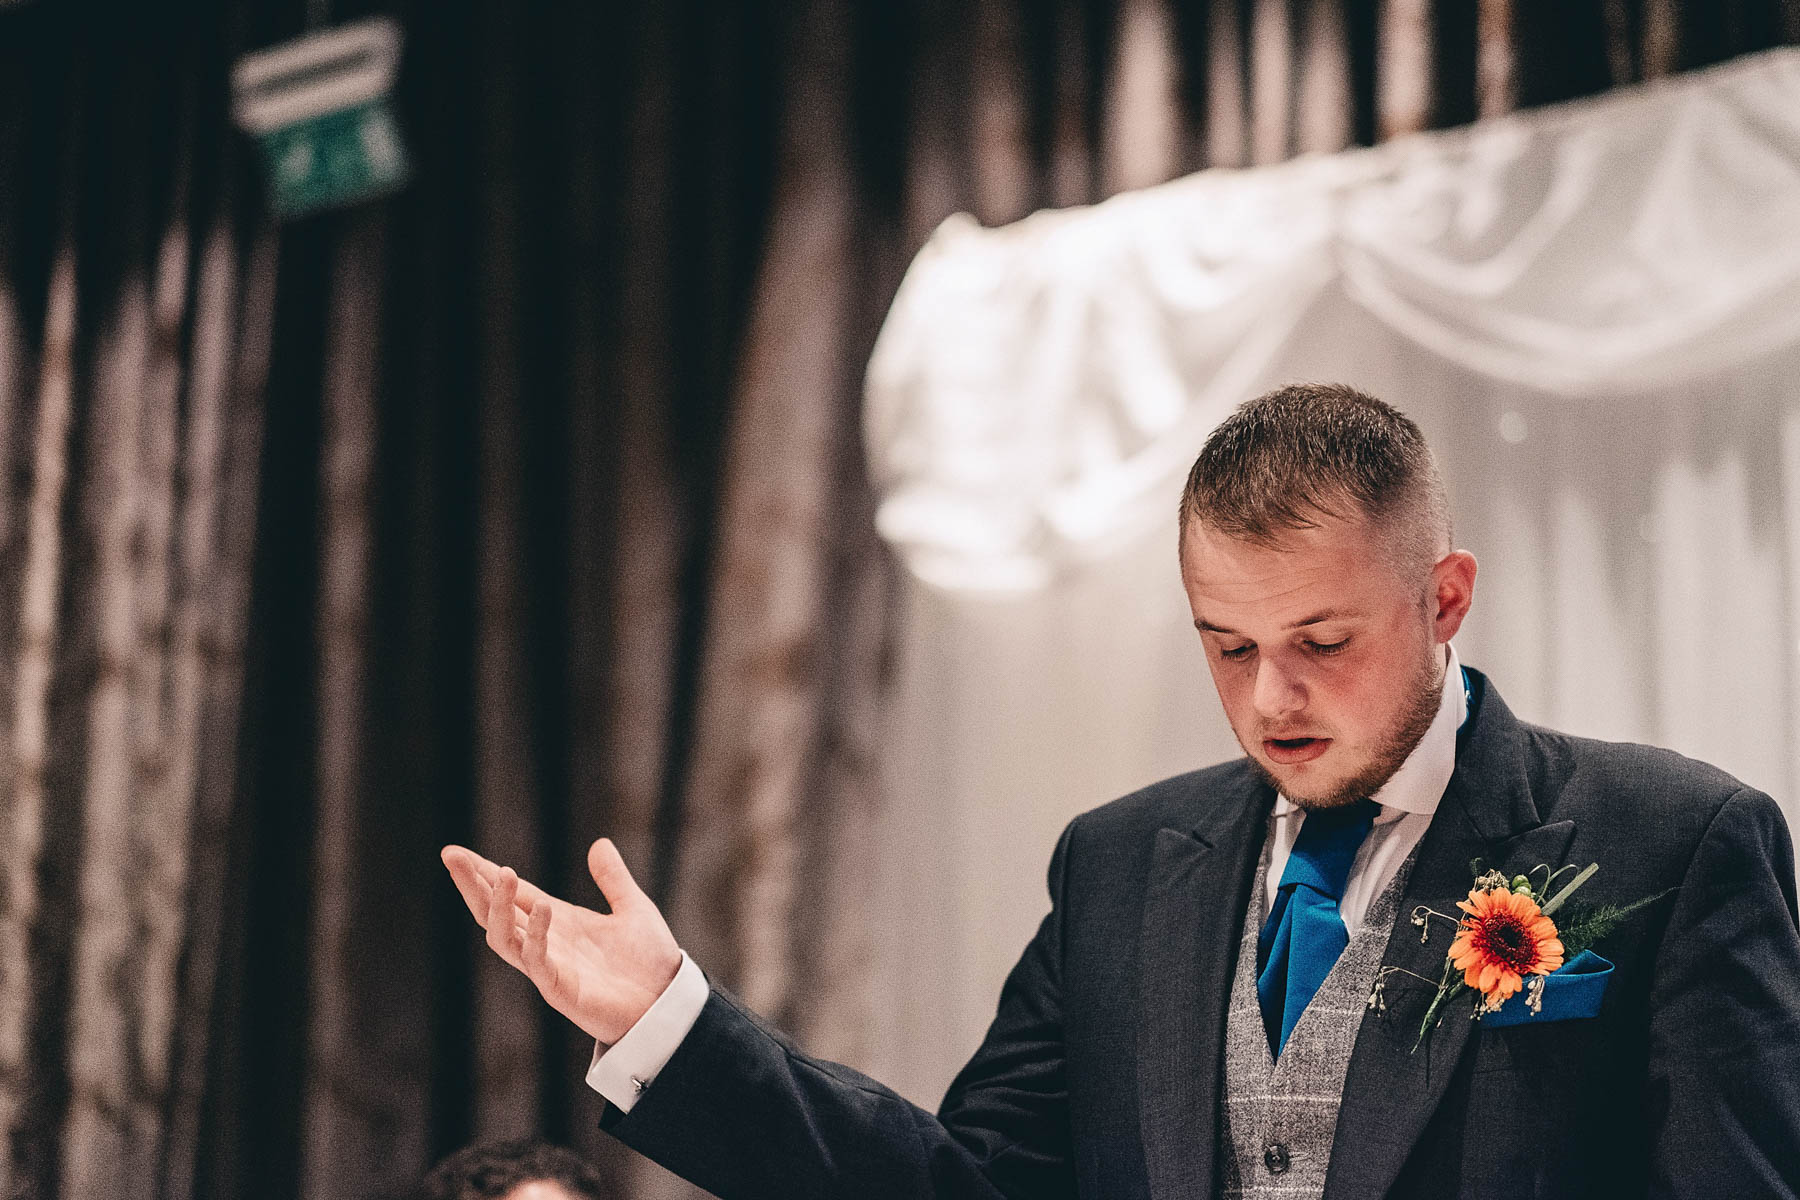 Groom holds his hand in the air during speech